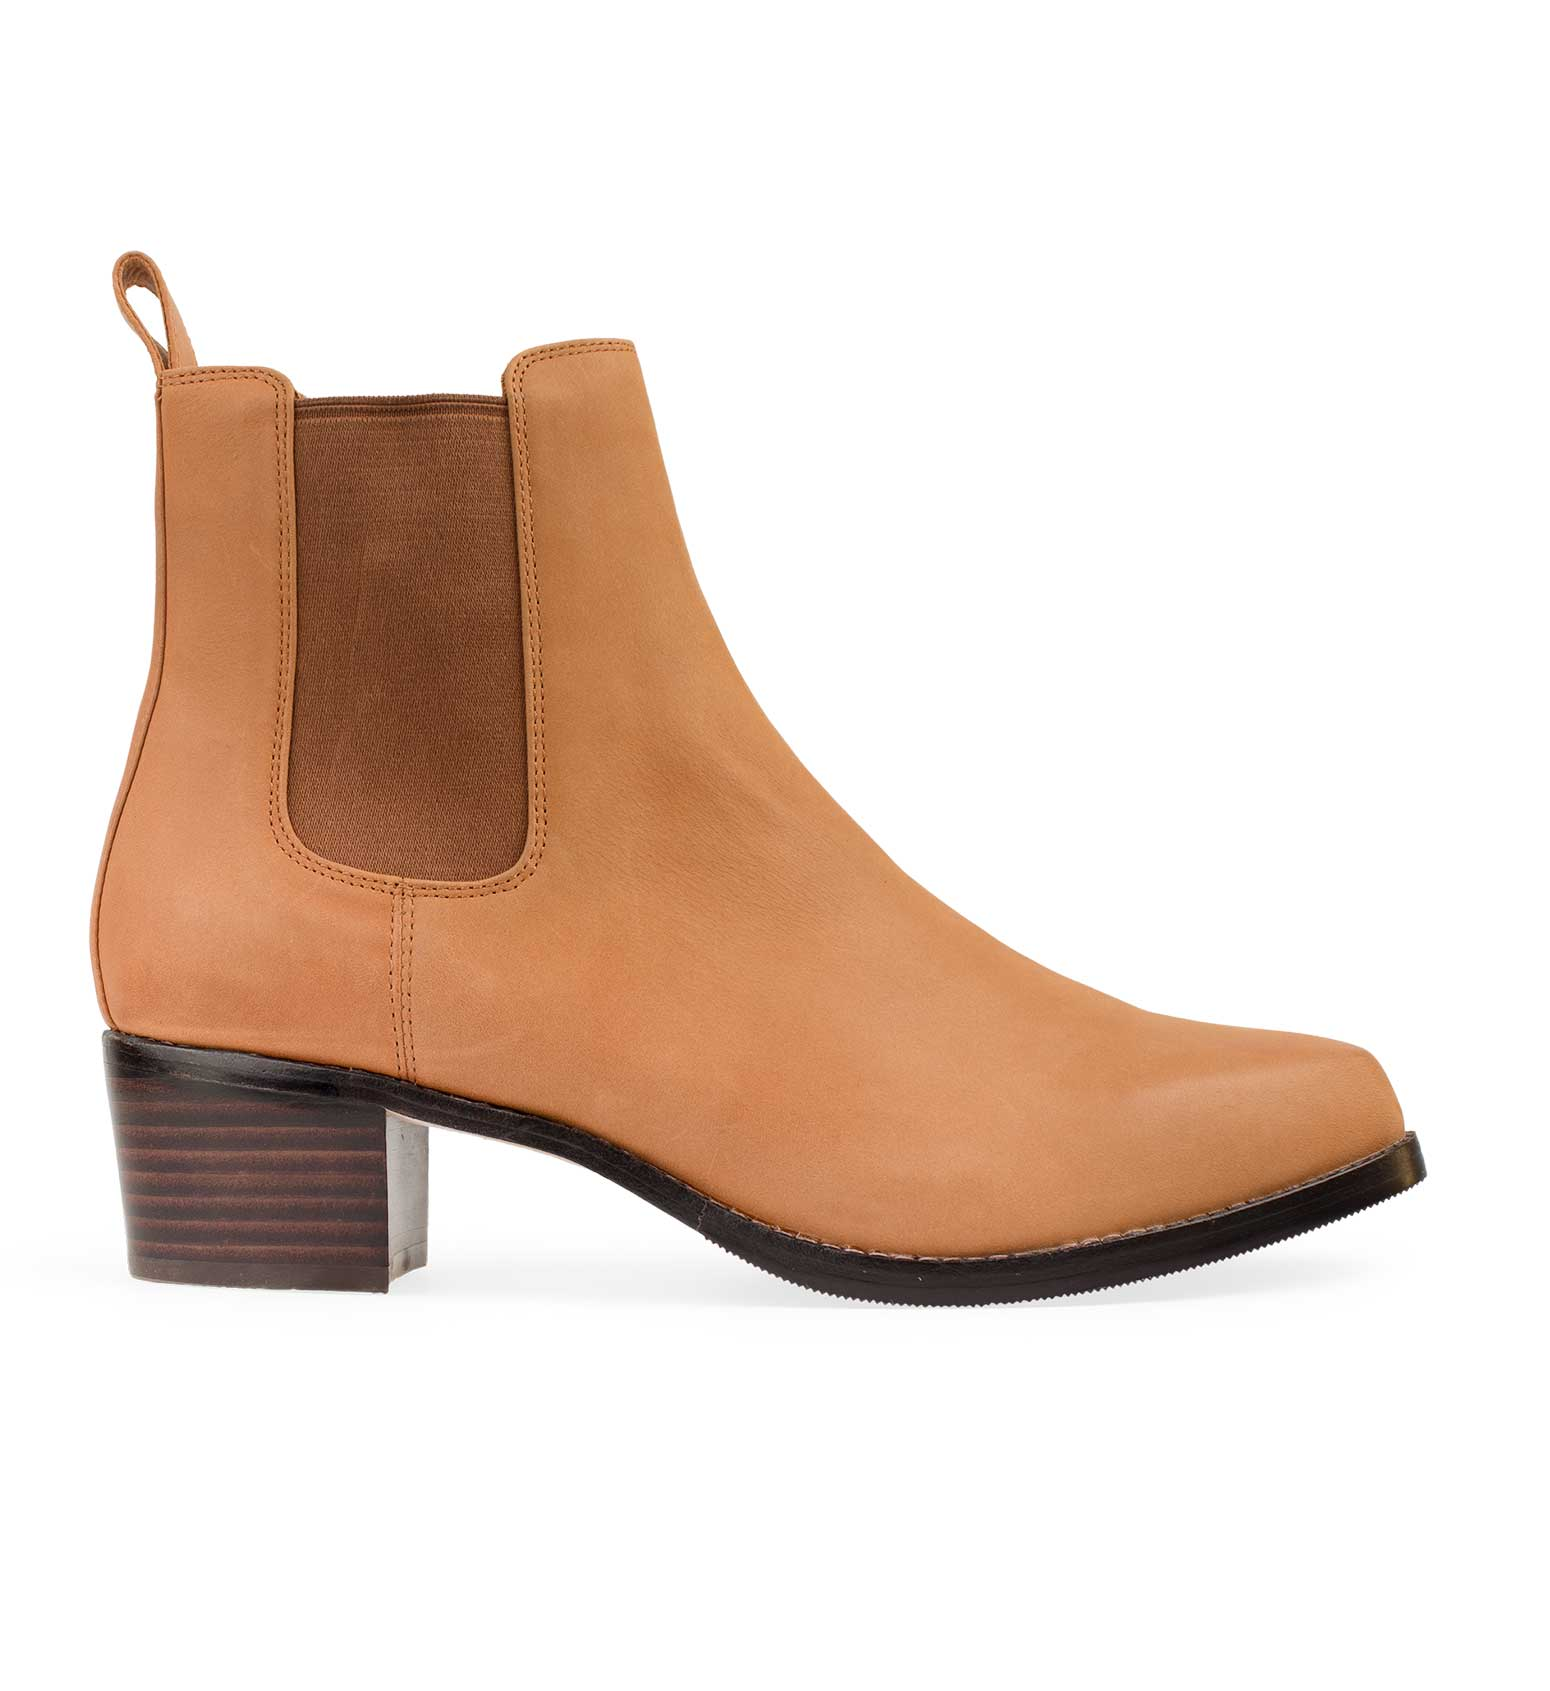 f66d75b6350 Bared Shoes: A revolution in footwear. Men's and women's shoes ...